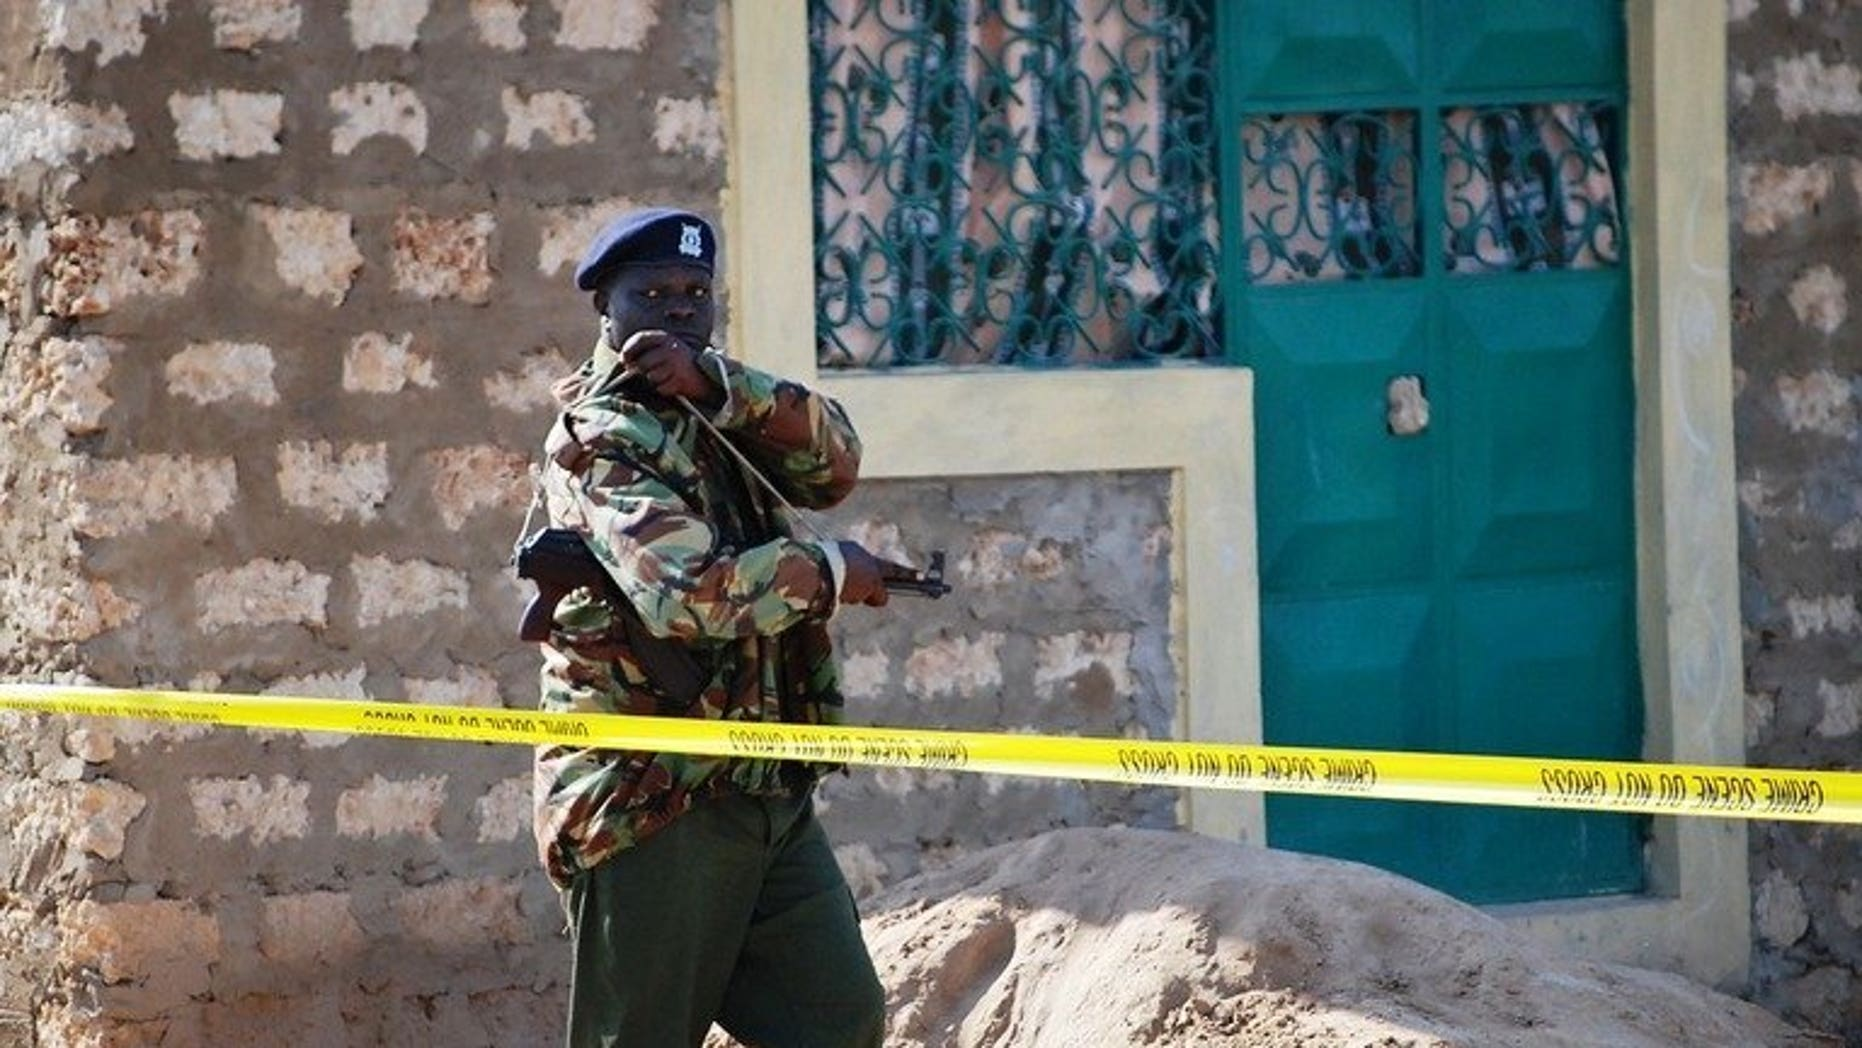 File picture shows a police officer guarding a house in Likoni, south of Kenya's main port of Mombasa, October 17, 2012. Gunmen in Kenya's port city Mombasa shot dead a Japanese man shortly after he withdrew money from a bank, police said Tuesday.